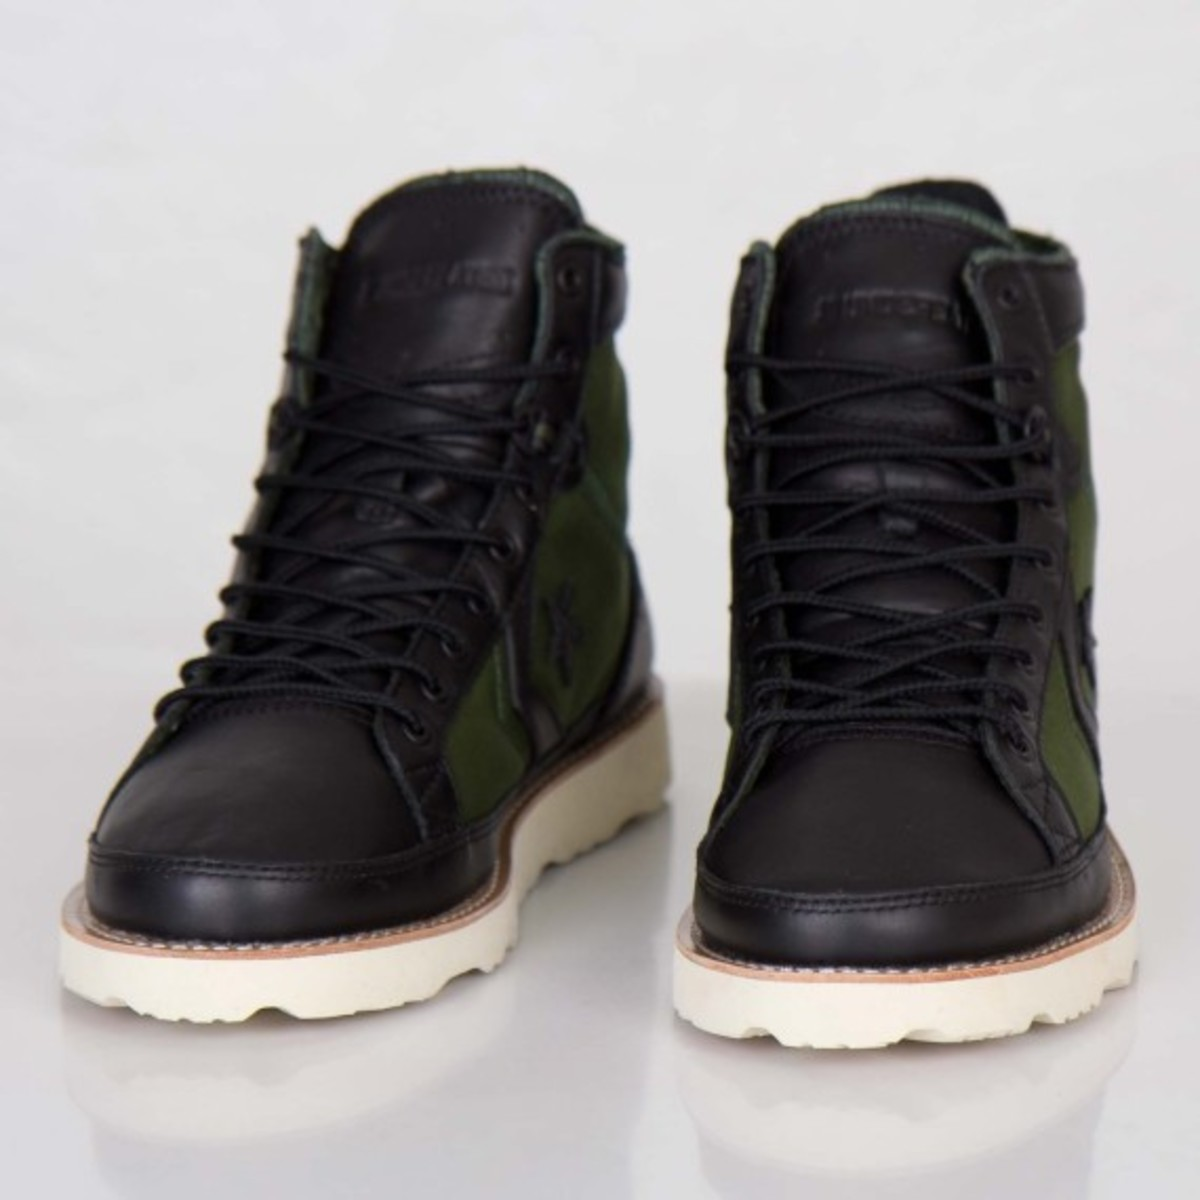 undefeated-converse-pro-field-hi-detailed-look-02